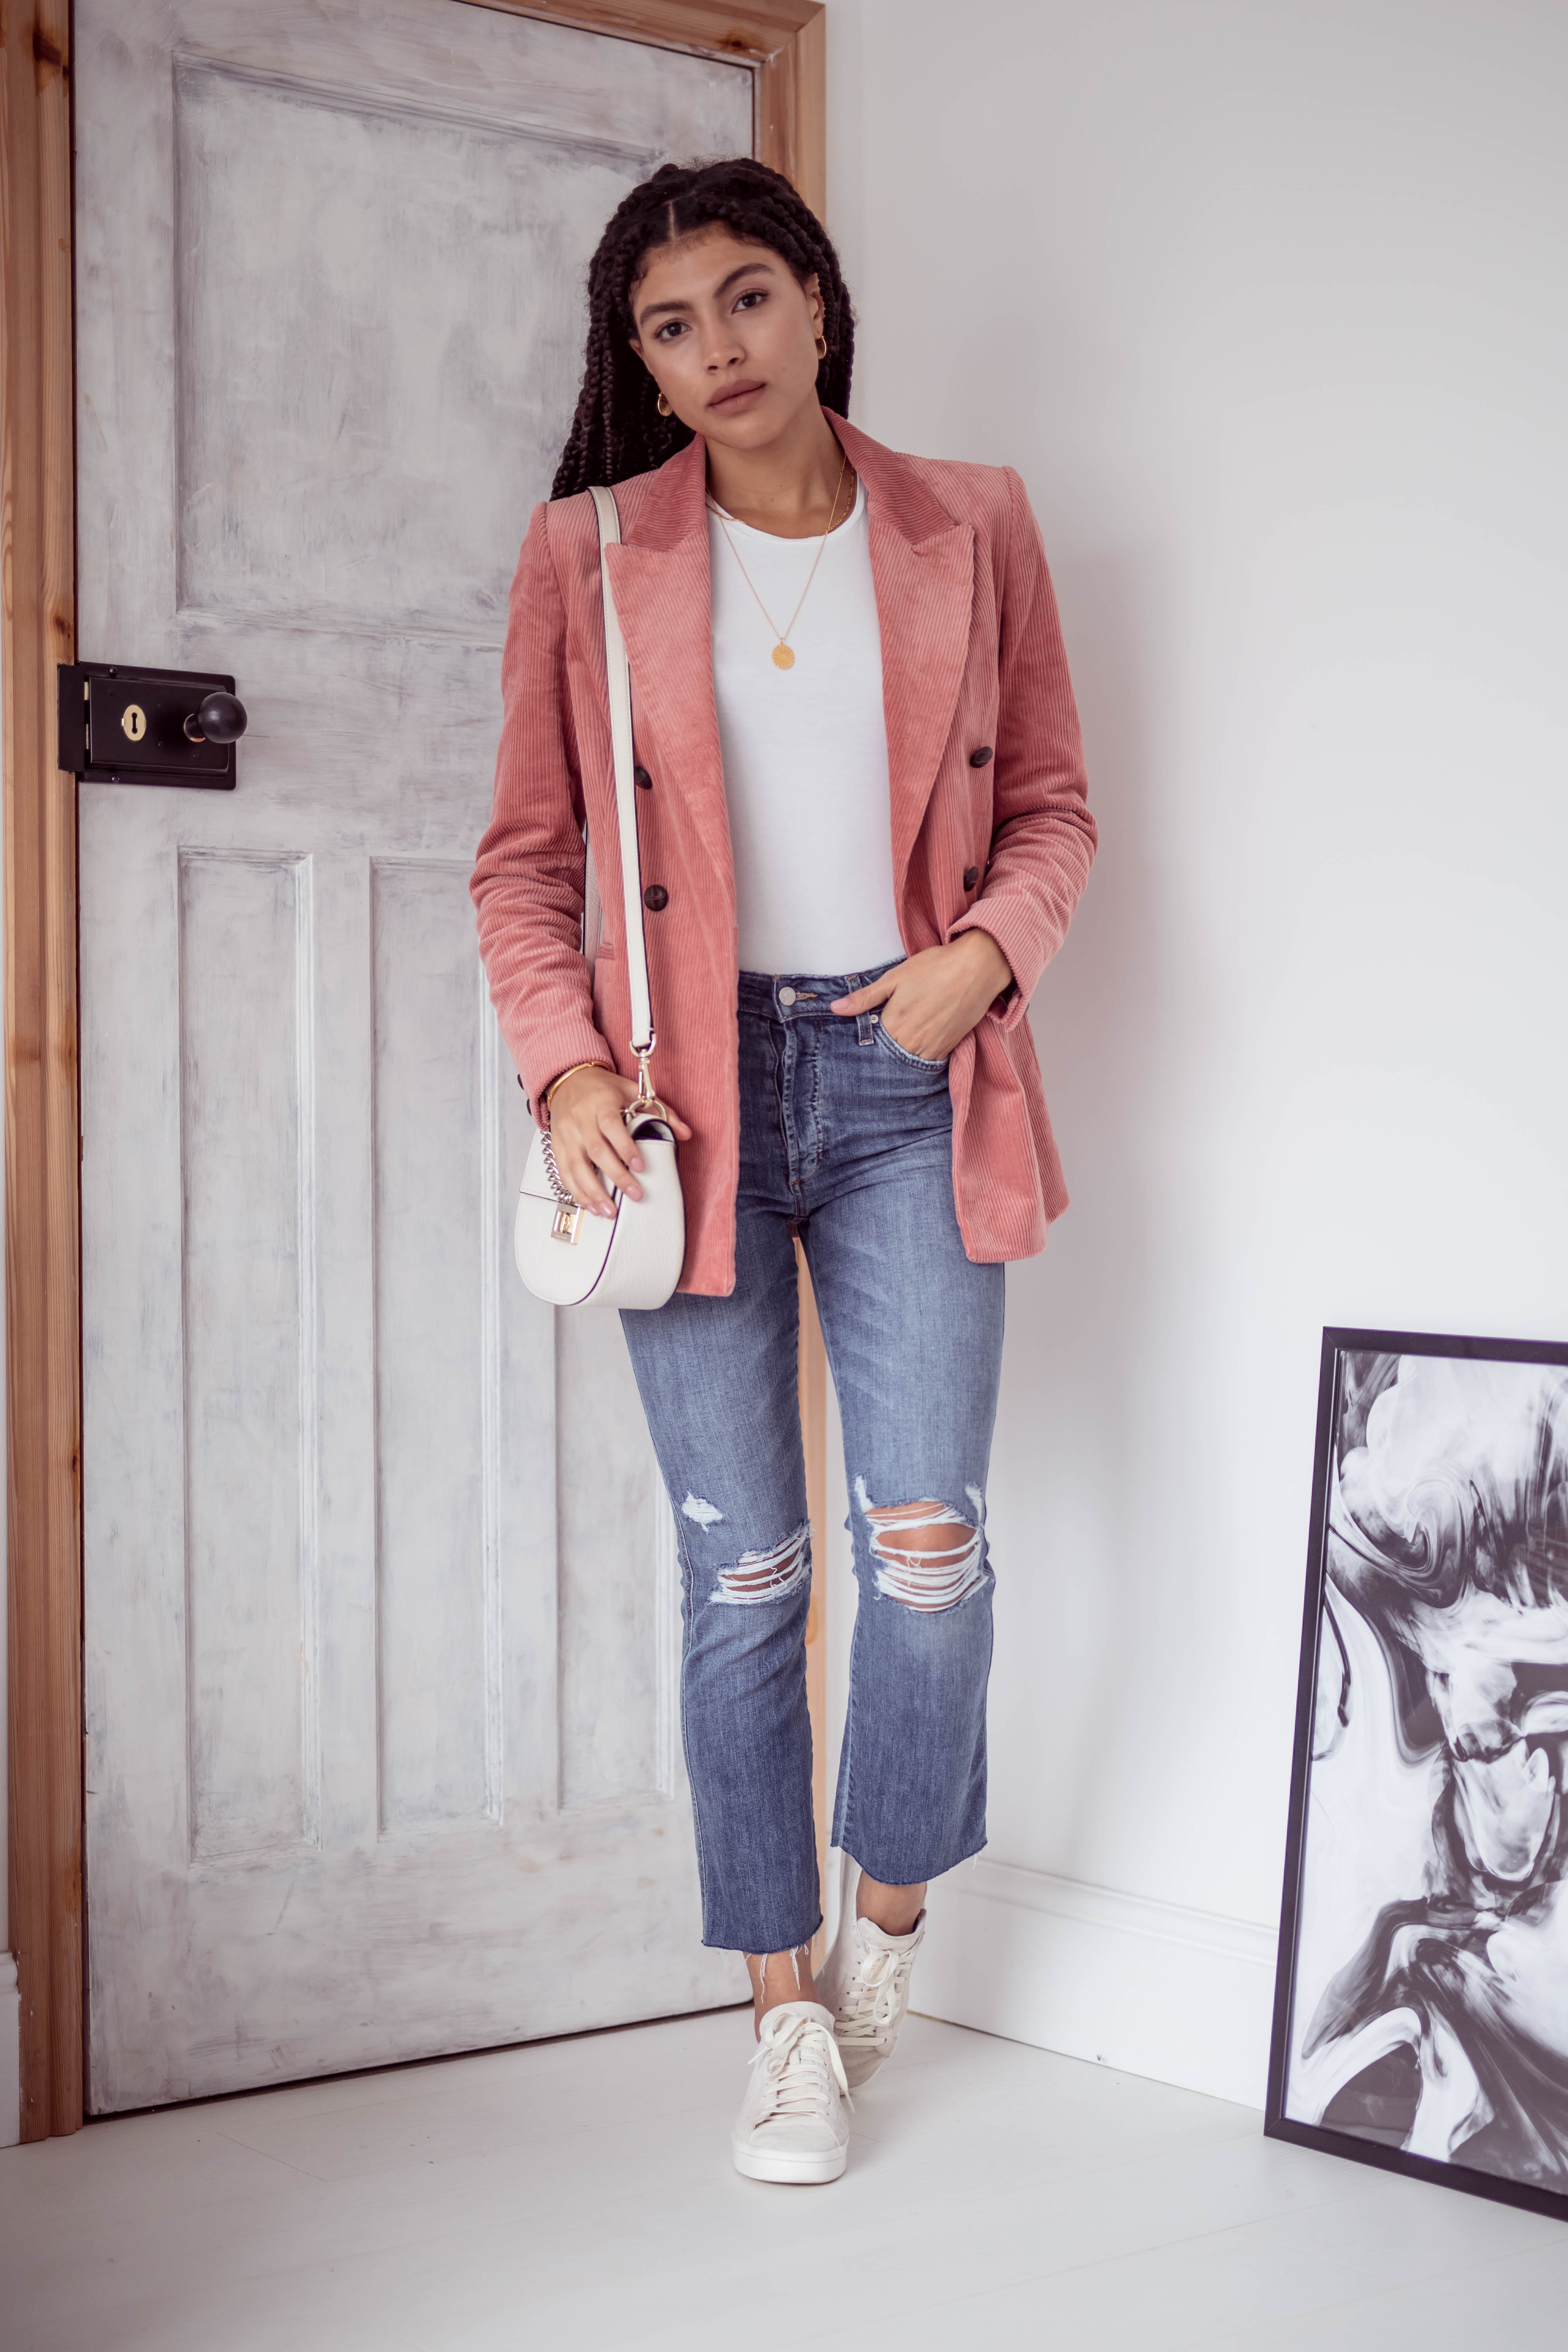 Casual Everyday cropped denim jeans and pink double breasted corduroy blazer outfit